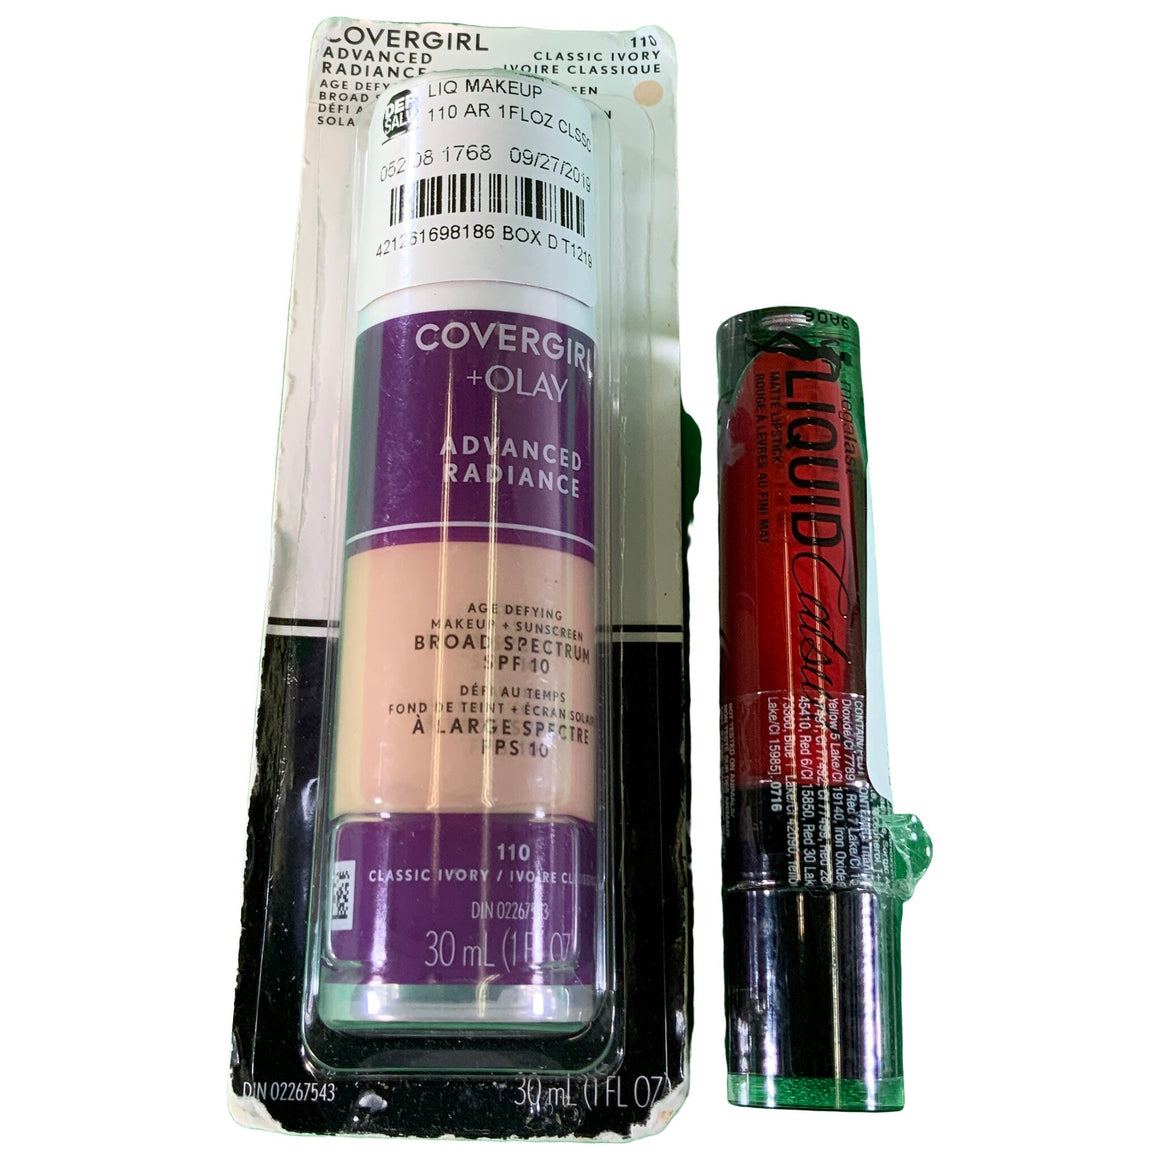 Advanced Radiance Foundation - Light Shades & Megalast Liquid Catsuit Lipstick Missy And Fierce .21 Fl Oz - Covergirl & Wet N Wild